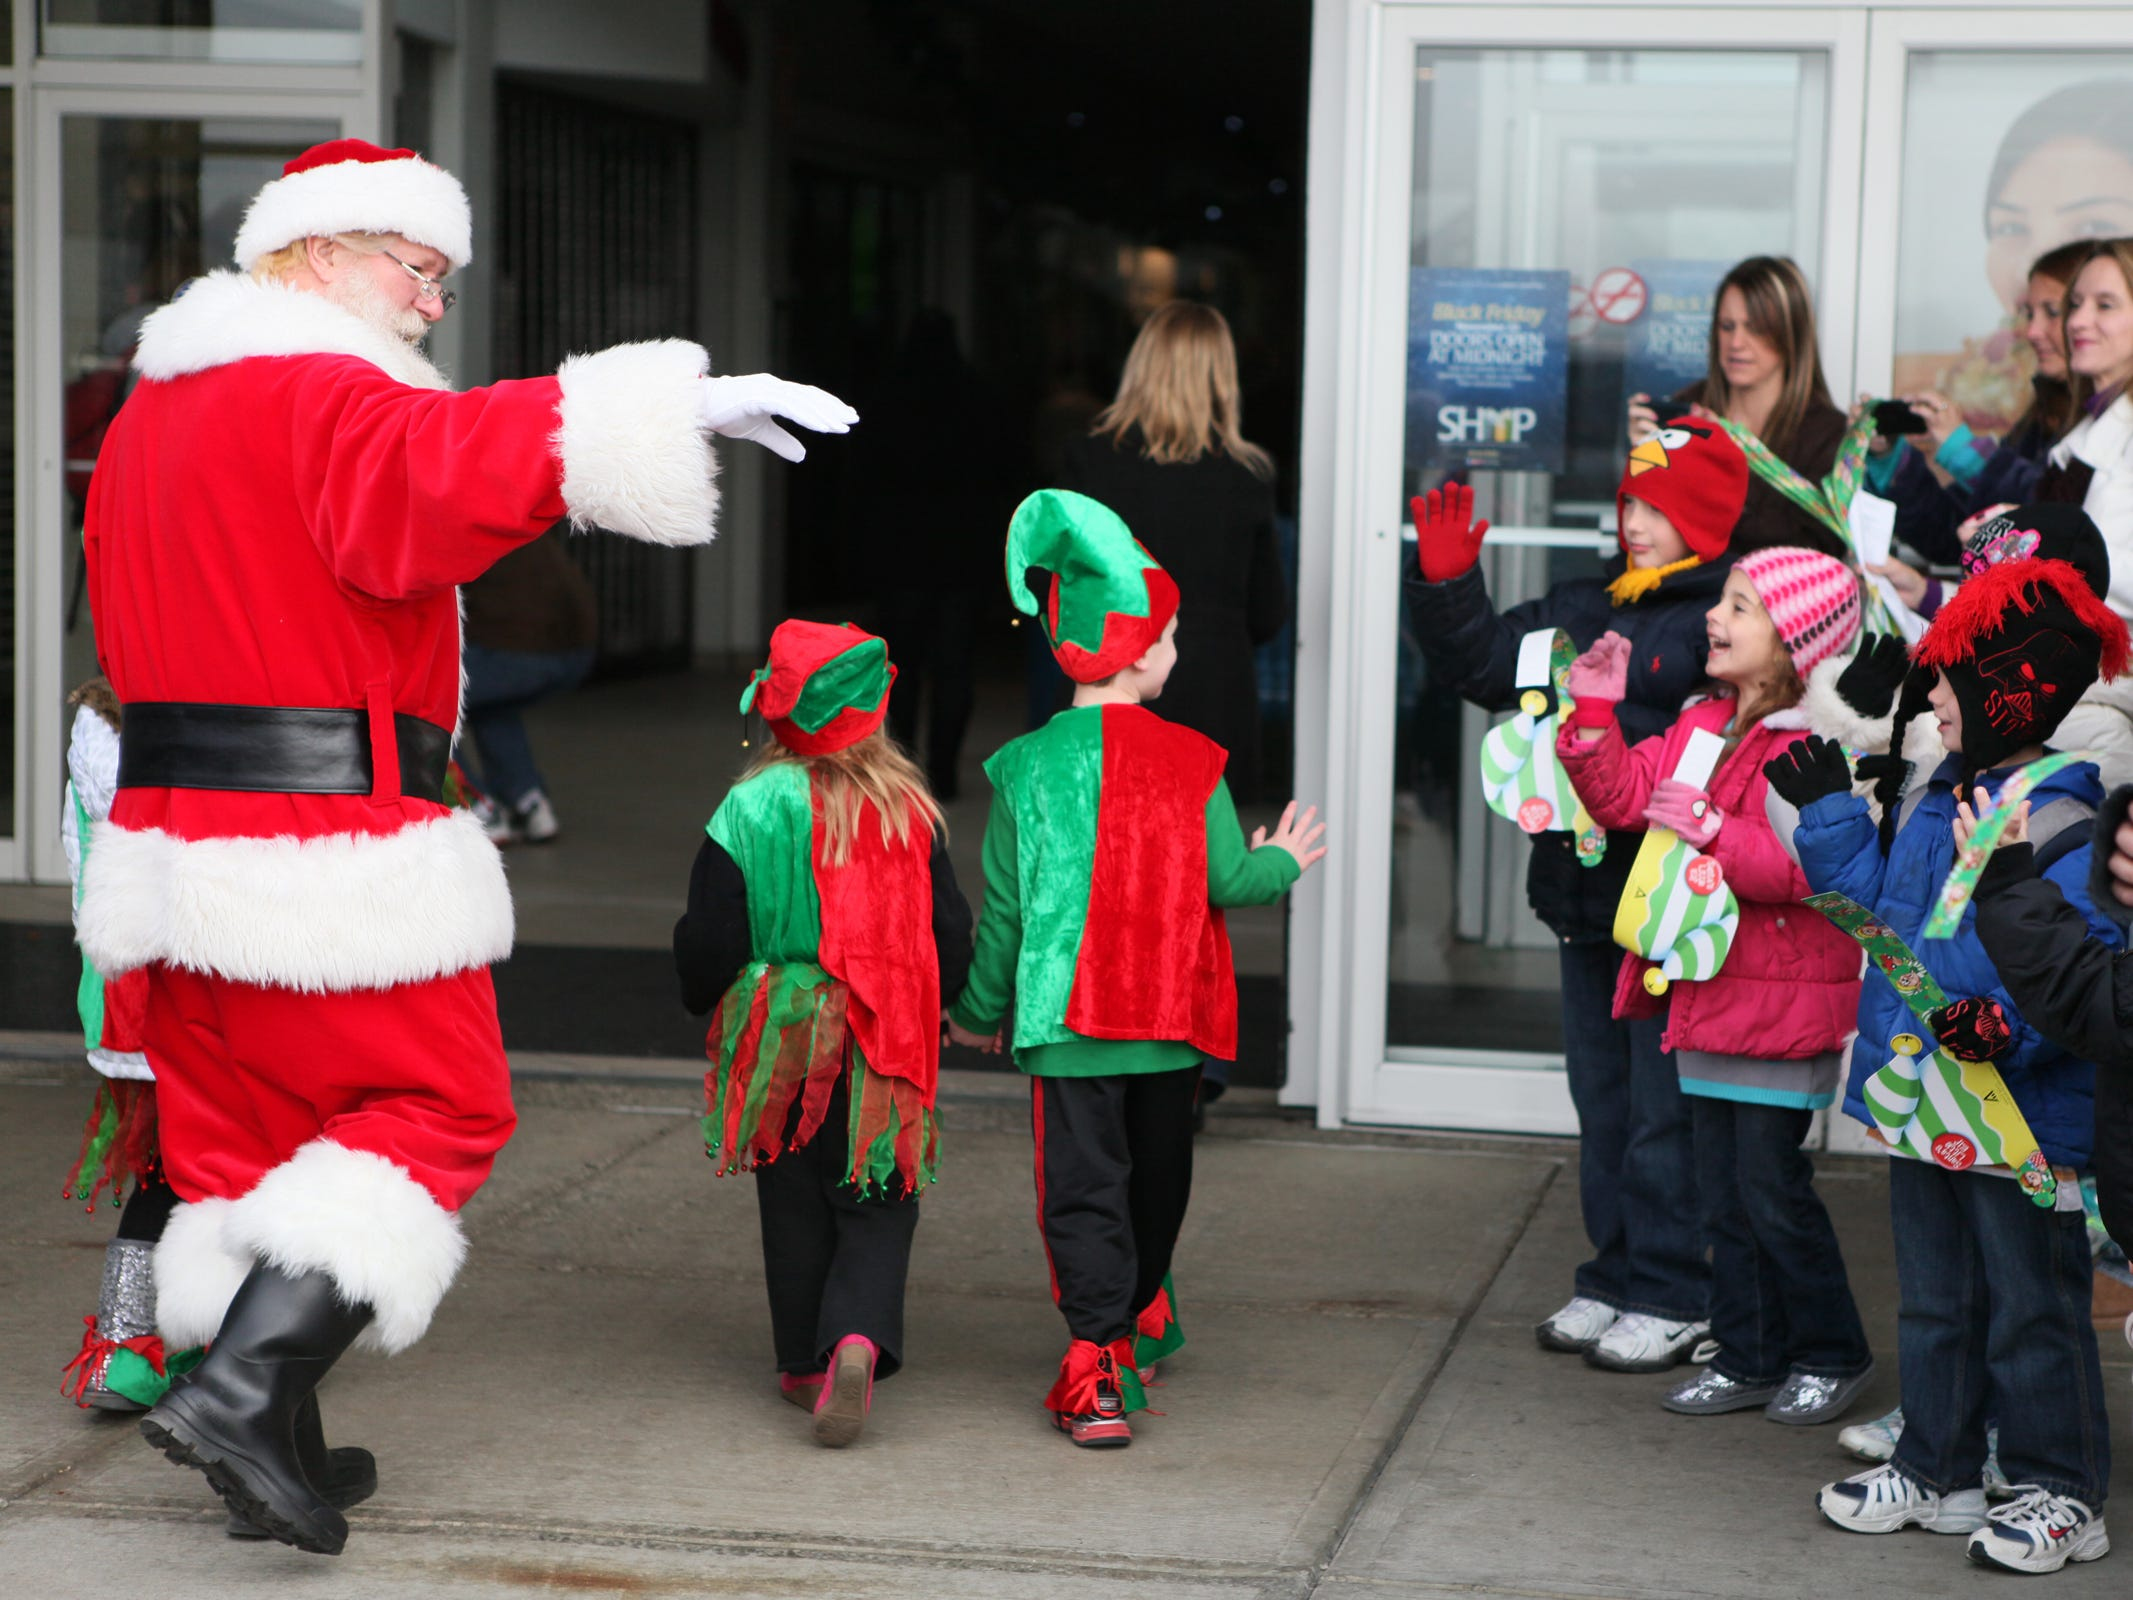 NEED YEAR Santa greets excited children at the Arnot Mall entrance Saturday morning. Santa greets excited children gathered at the Arnot Mall entrance in 2012.